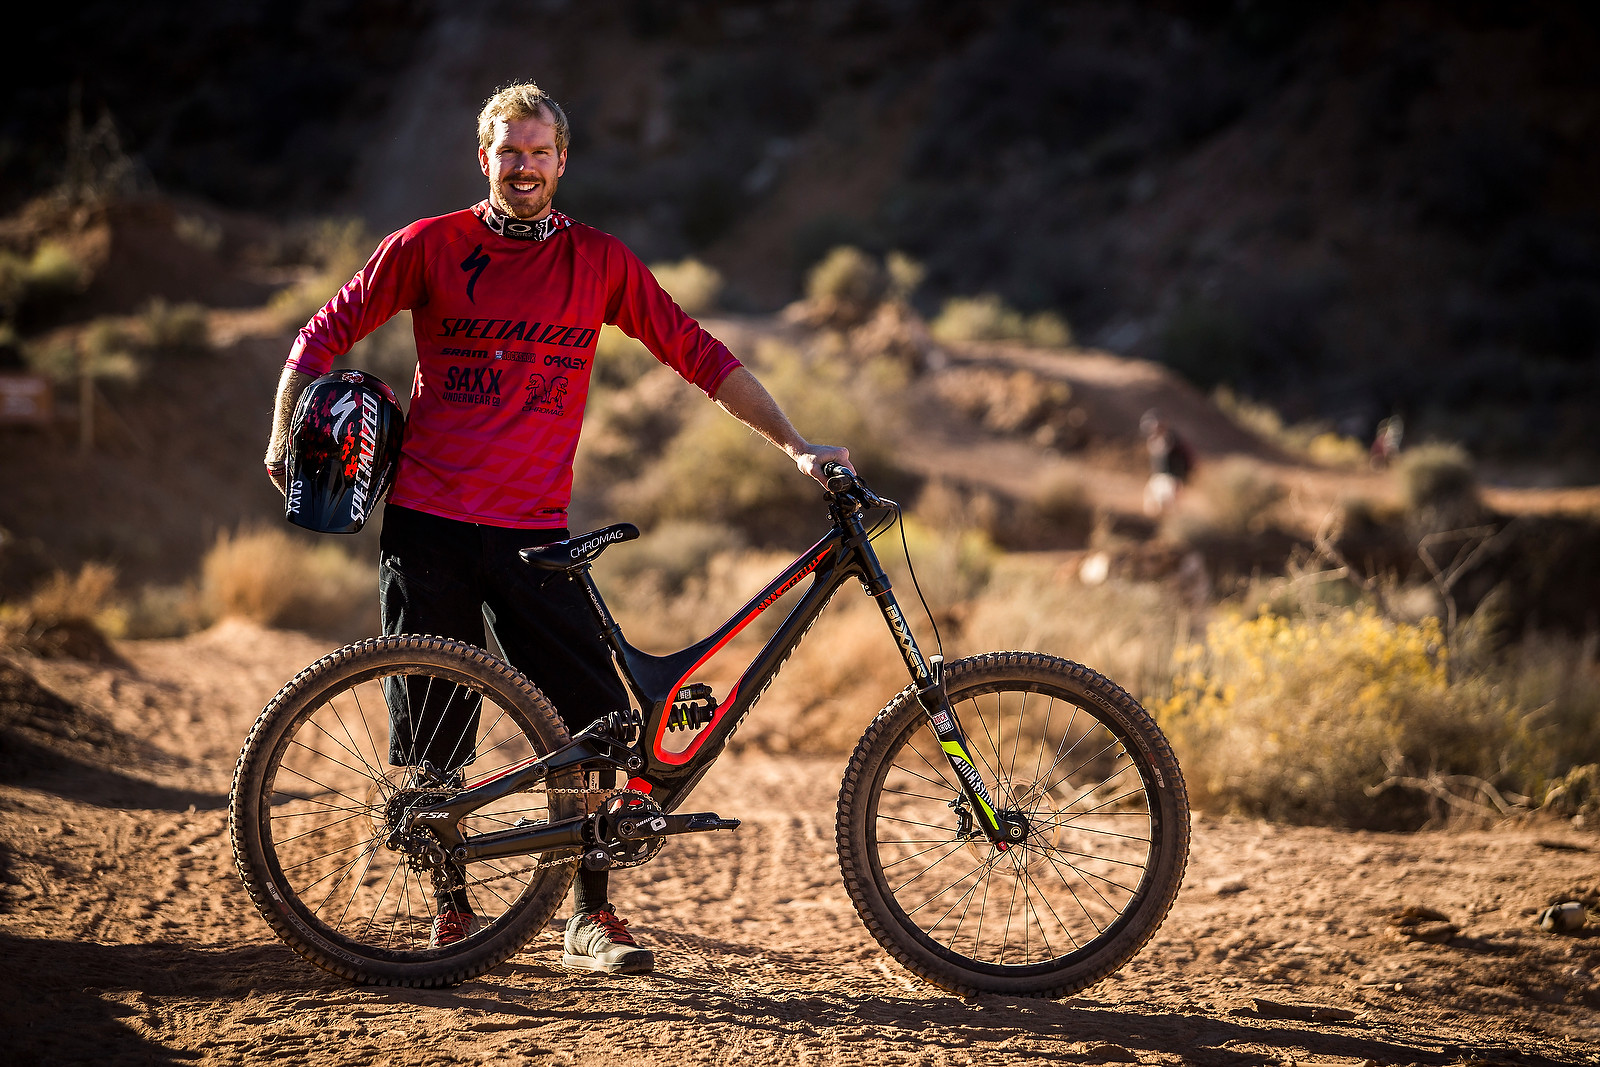 Kyle Norbraten with his Specialized Demo at Rampage - Pro Bikes - Red Bull Rampage - Mountain Biking Pictures - Vital MTB